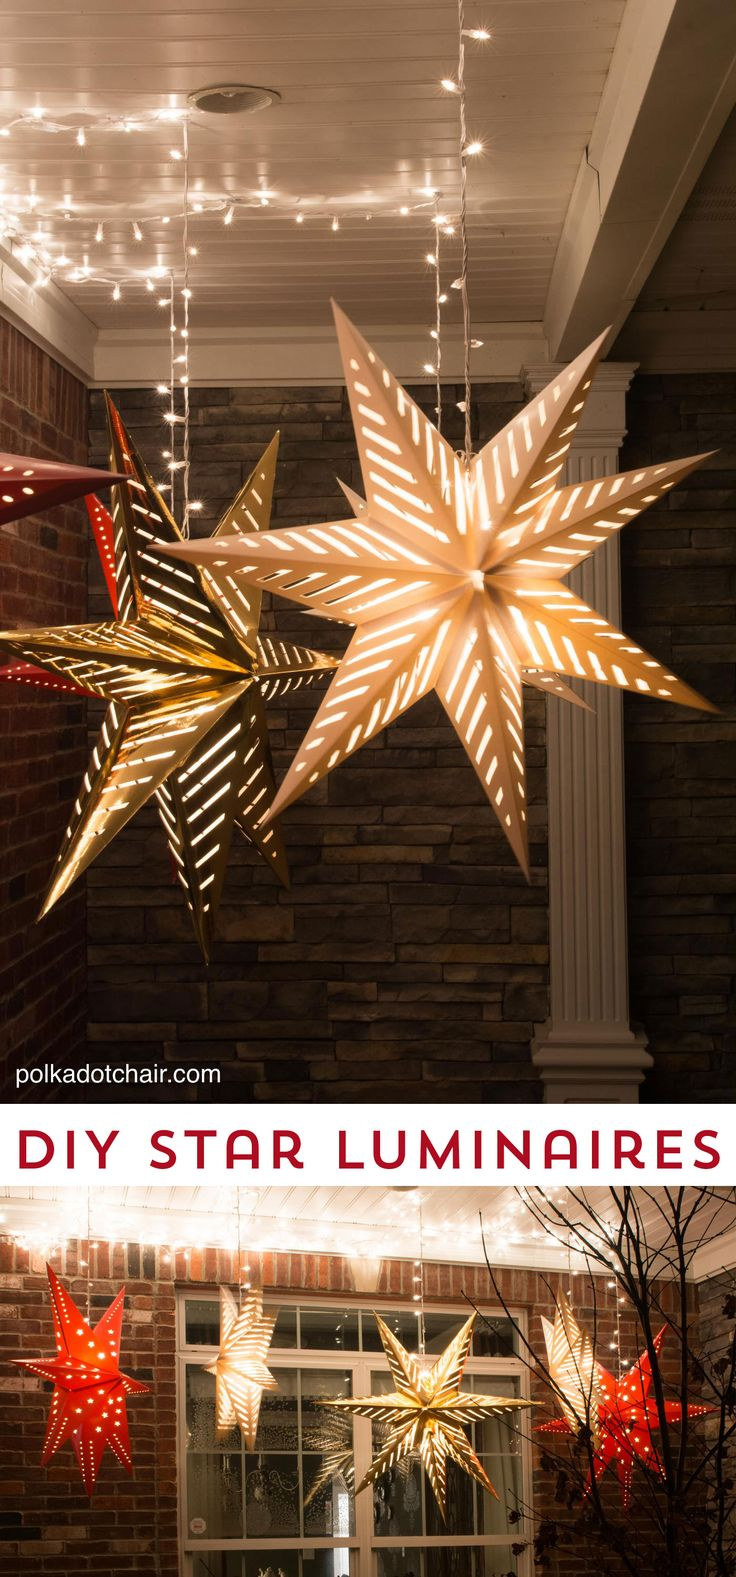 101 handmade christmas ornament ideas - A Crafty Arab 99 Creative Star Projects How To Hang Star Luminaires On Your